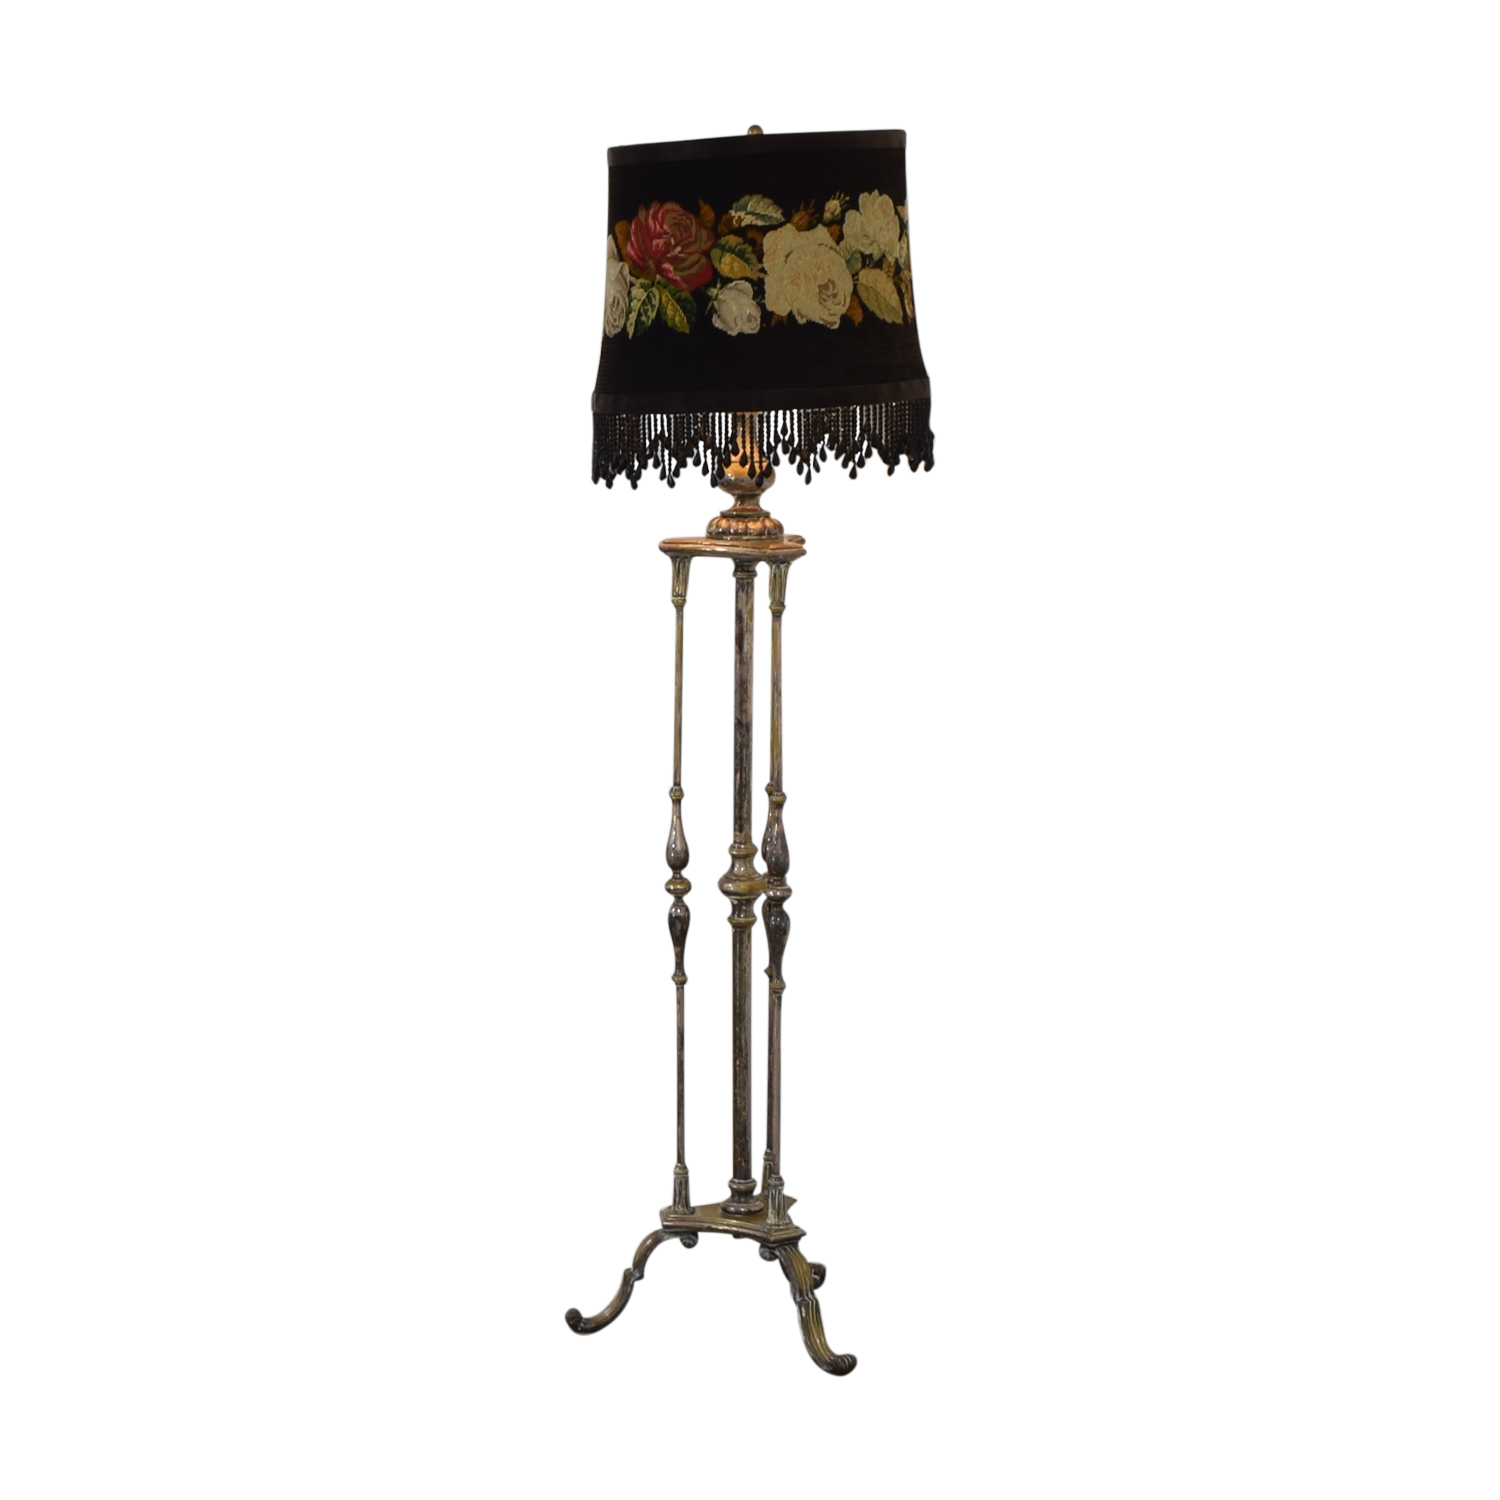 Antique Silver Plated Floral Needlepoint Floor Lamp